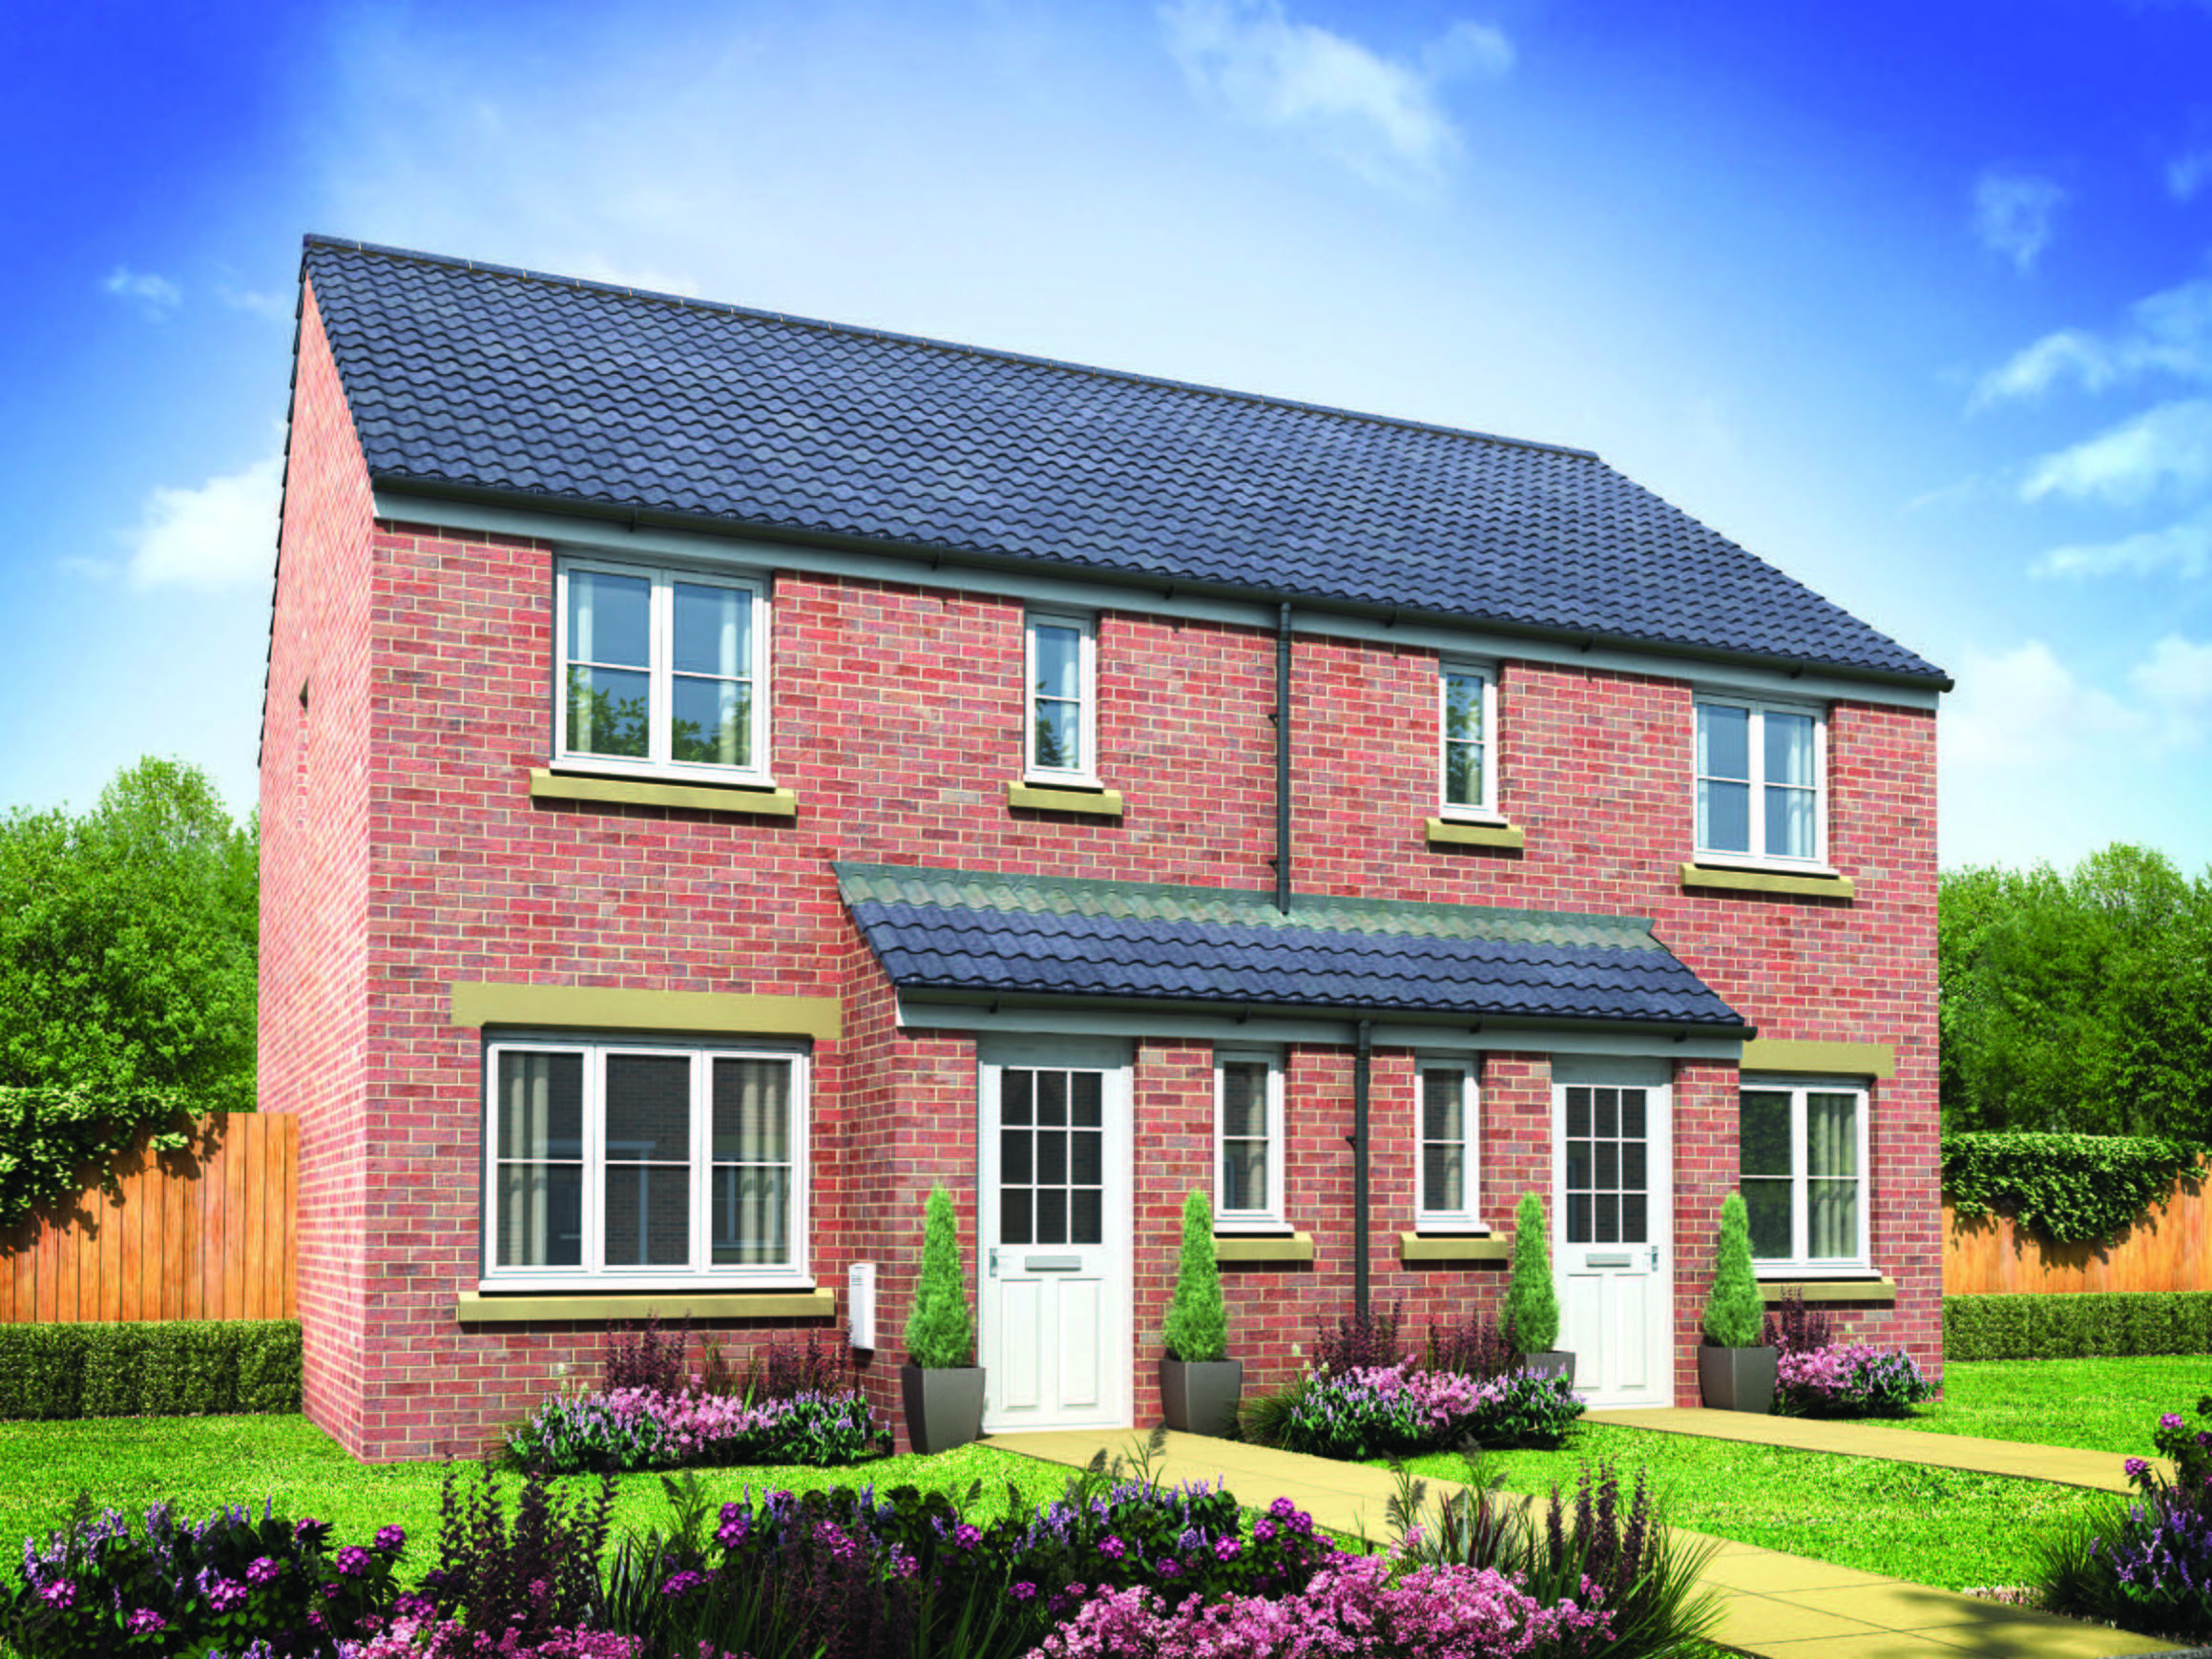 Best Houses For Sale In Cardiff South Glamorgan Cf23 9Pl With Pictures